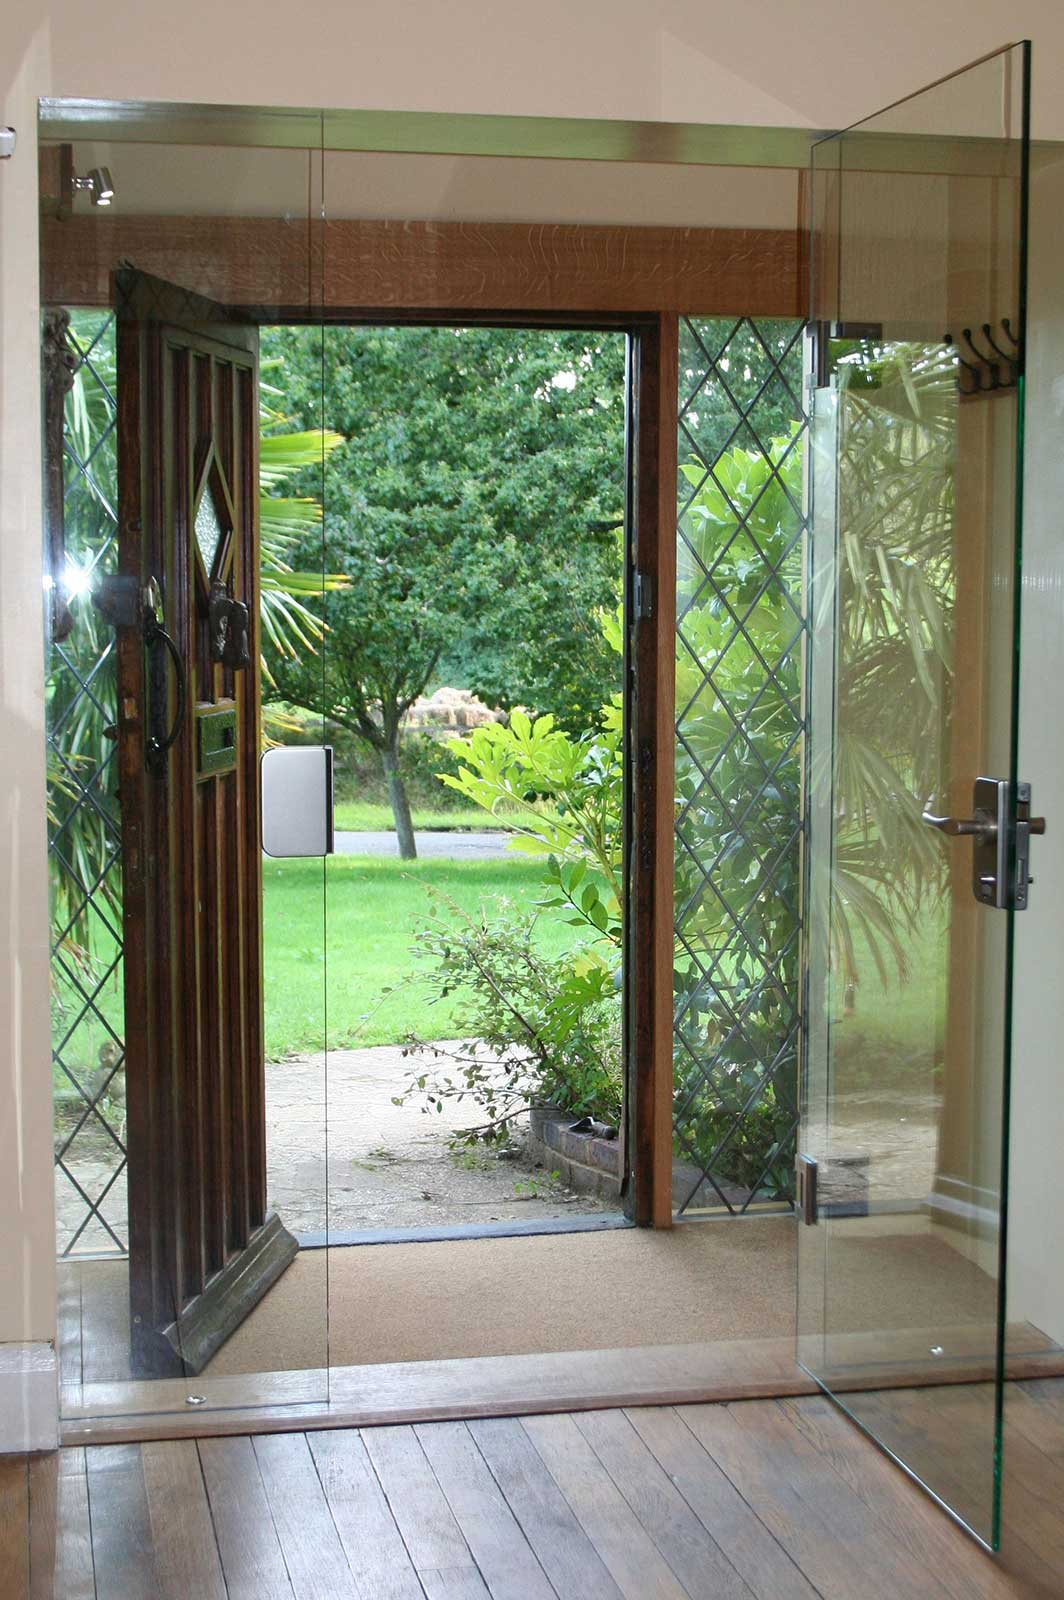 Secure Frameless Glass Door with Locks and Fixtures